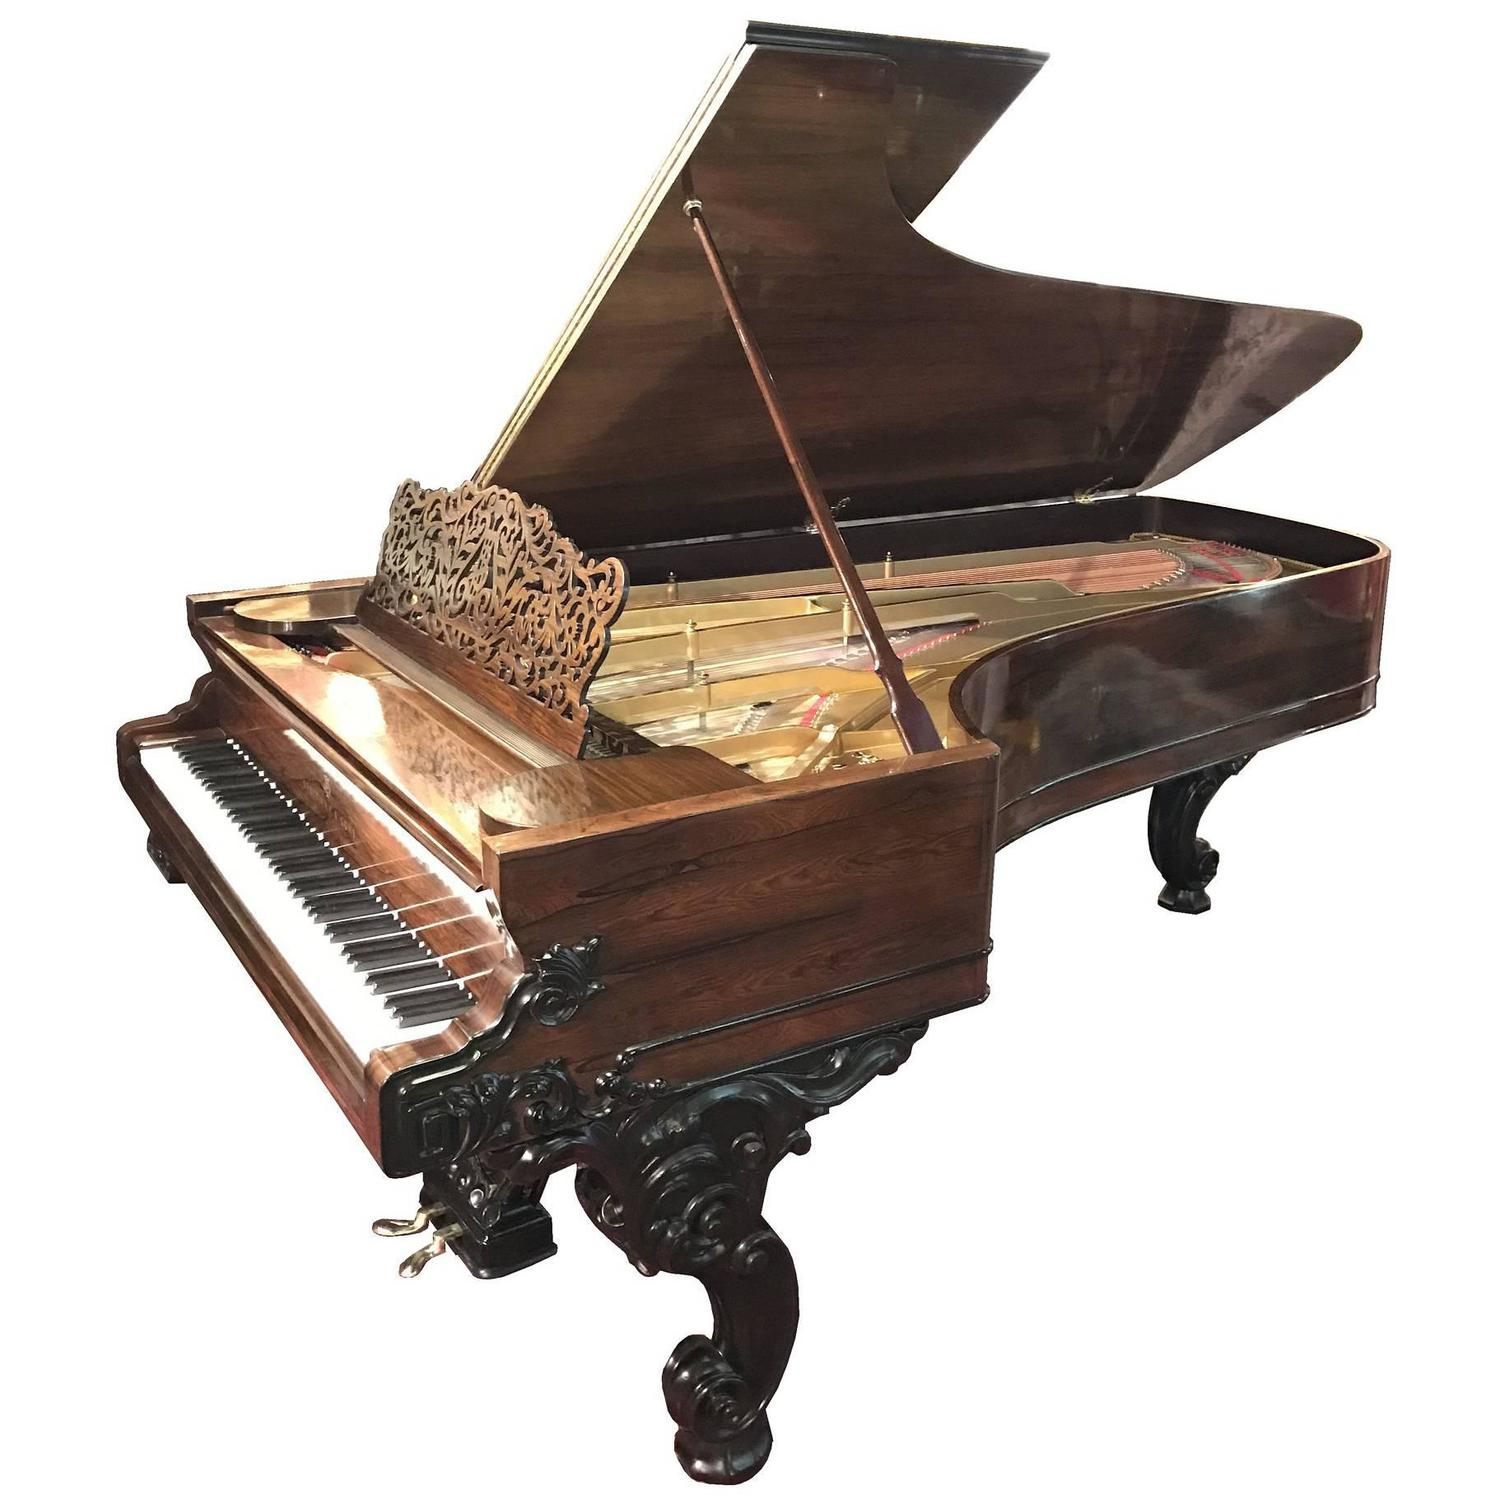 Grand Piano Images steinway concert grand piano with rosewood and ebonized case for